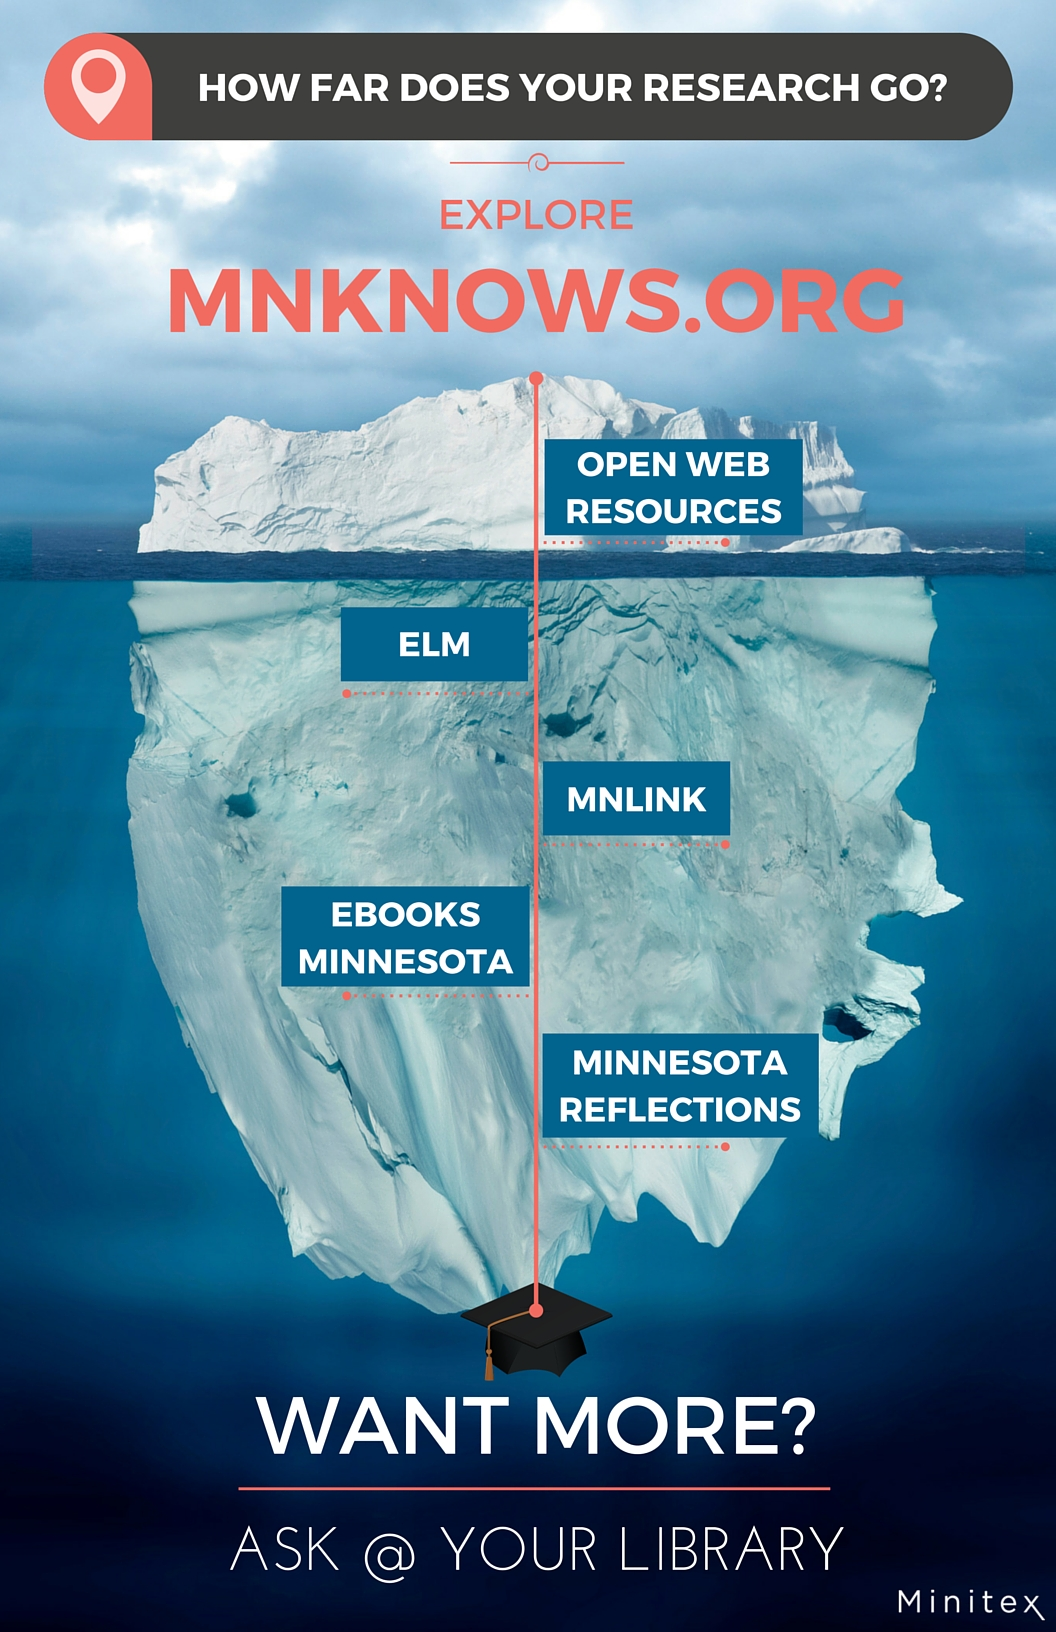 Explore MnKnows